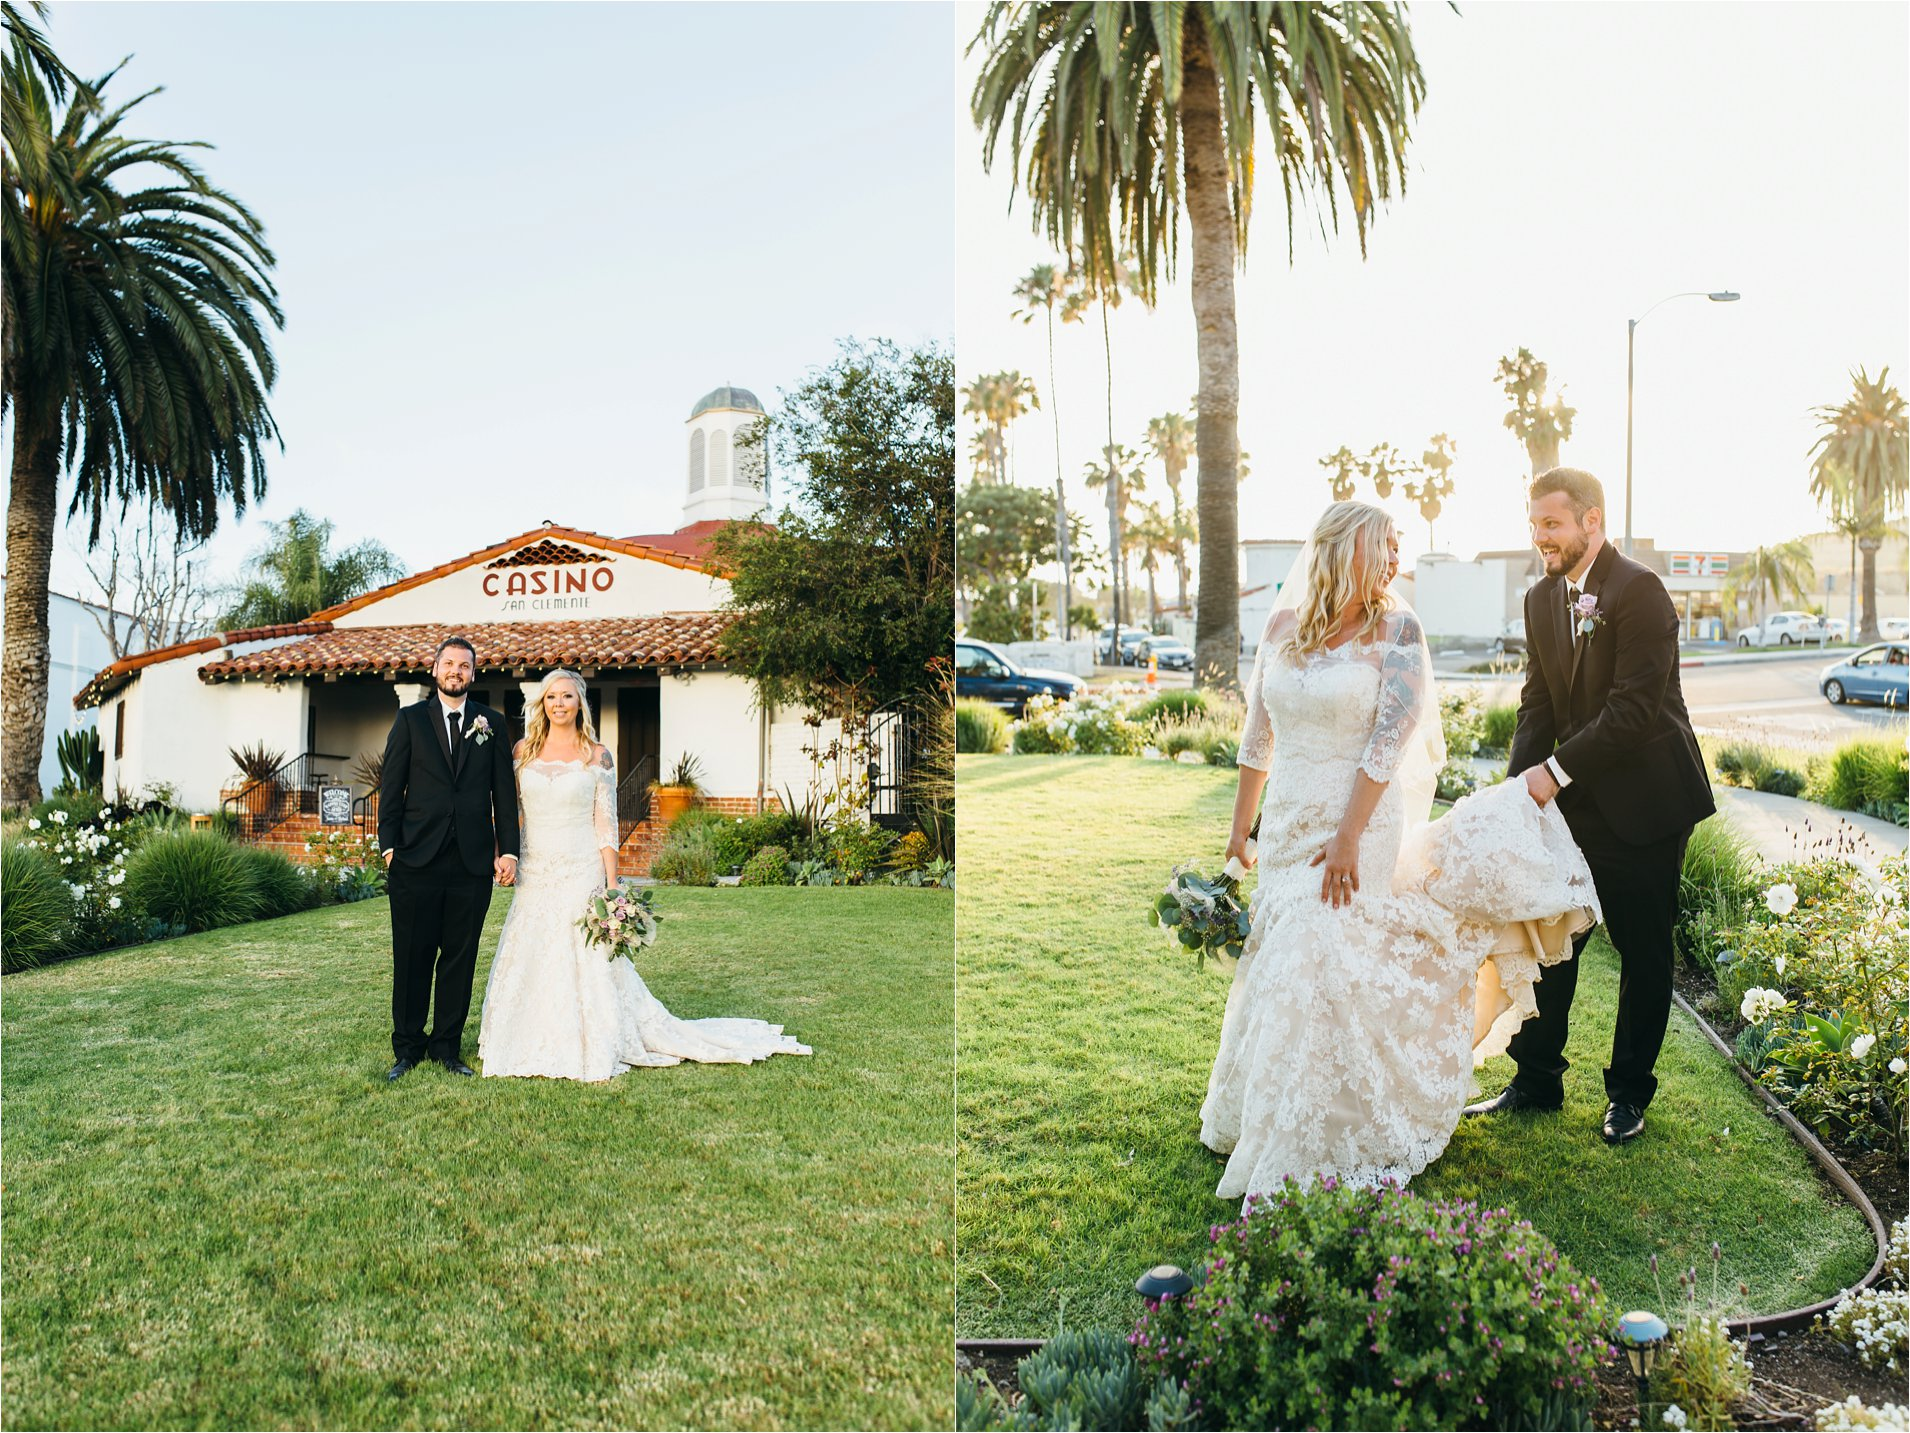 The Casino bride and groom in San Clemente, CA